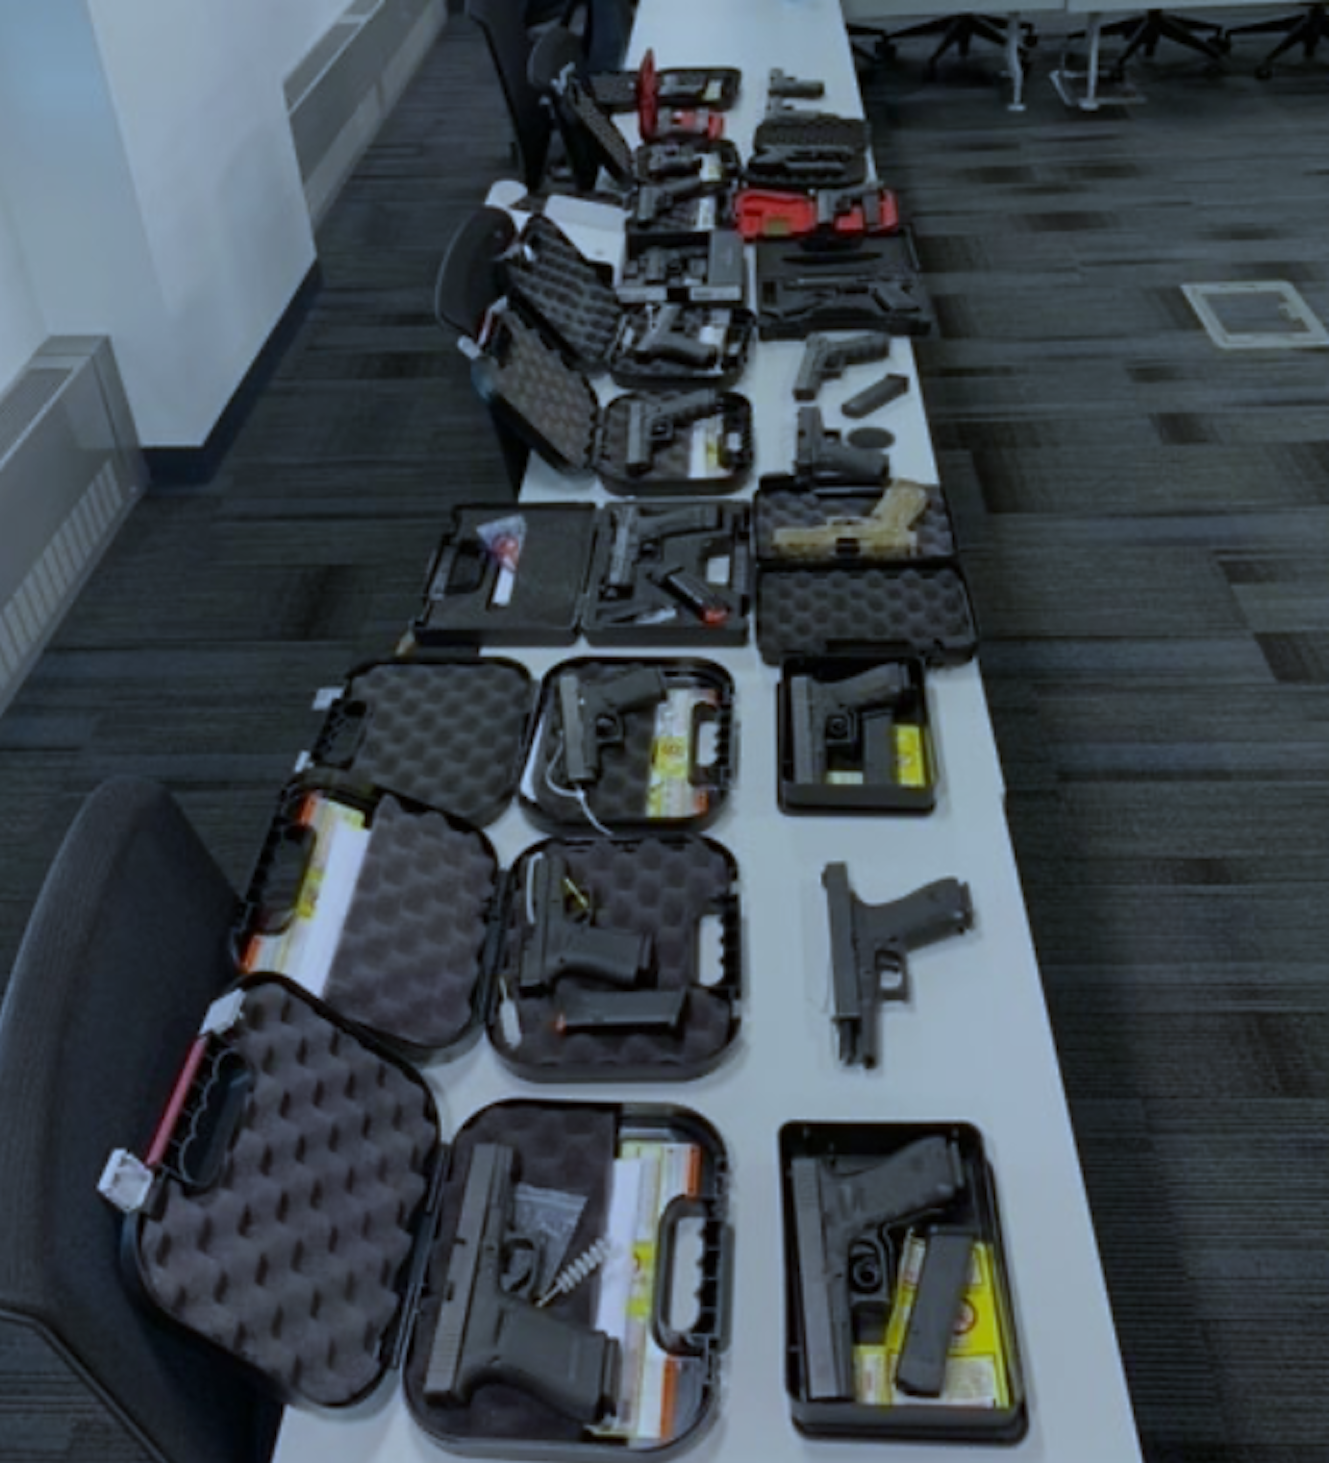 Jerome Boykin, 30, of St. Louis, is accused of trying to sell these 22 guns in exchange for what he thought was 6 pounds of marijuana on Oct. 8 in the Chicago area, according to federal authorities.